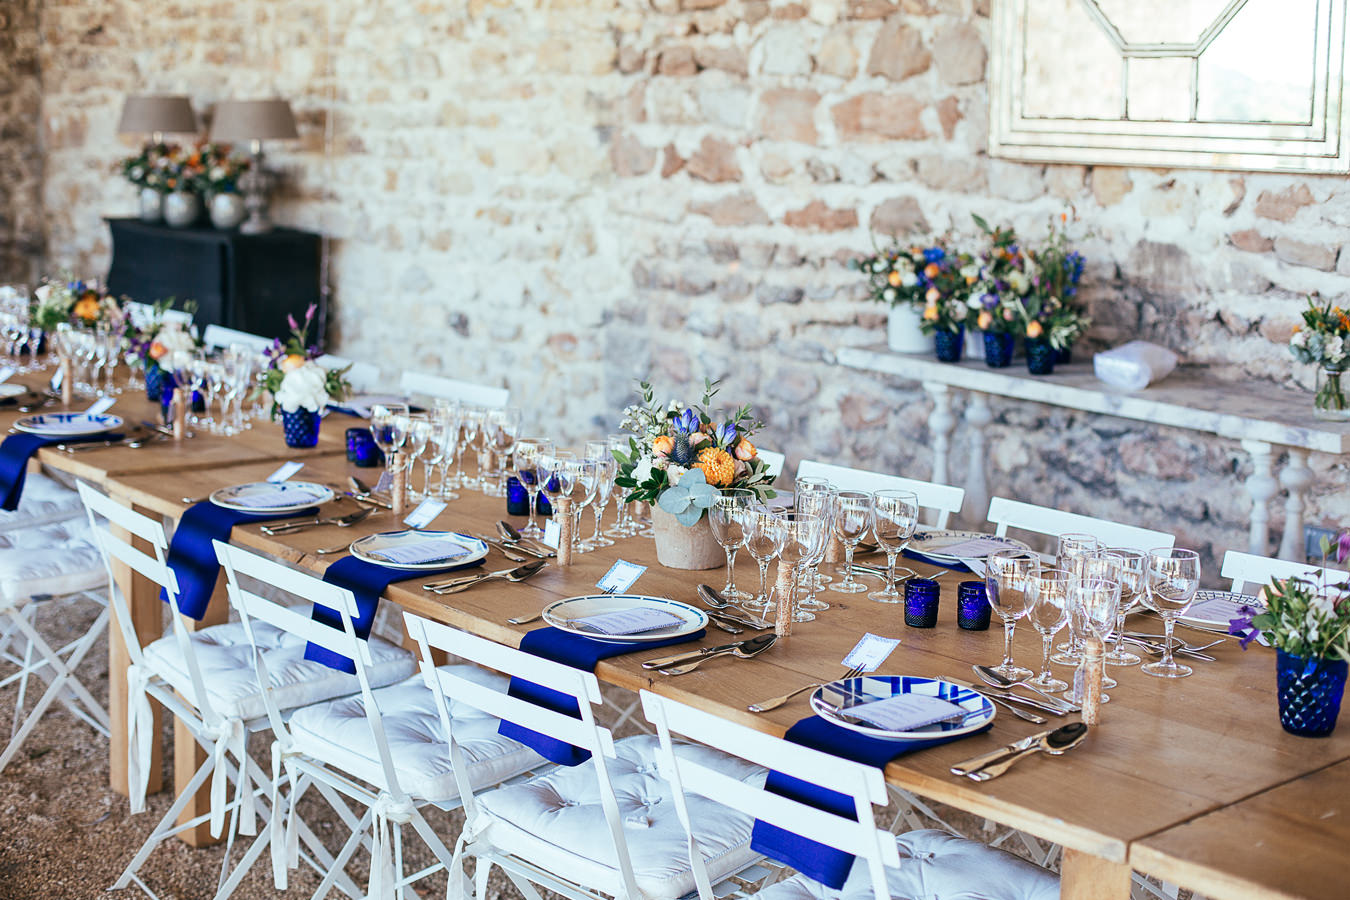 wedding_champetre_domaine_patras_a+p-146.jpg